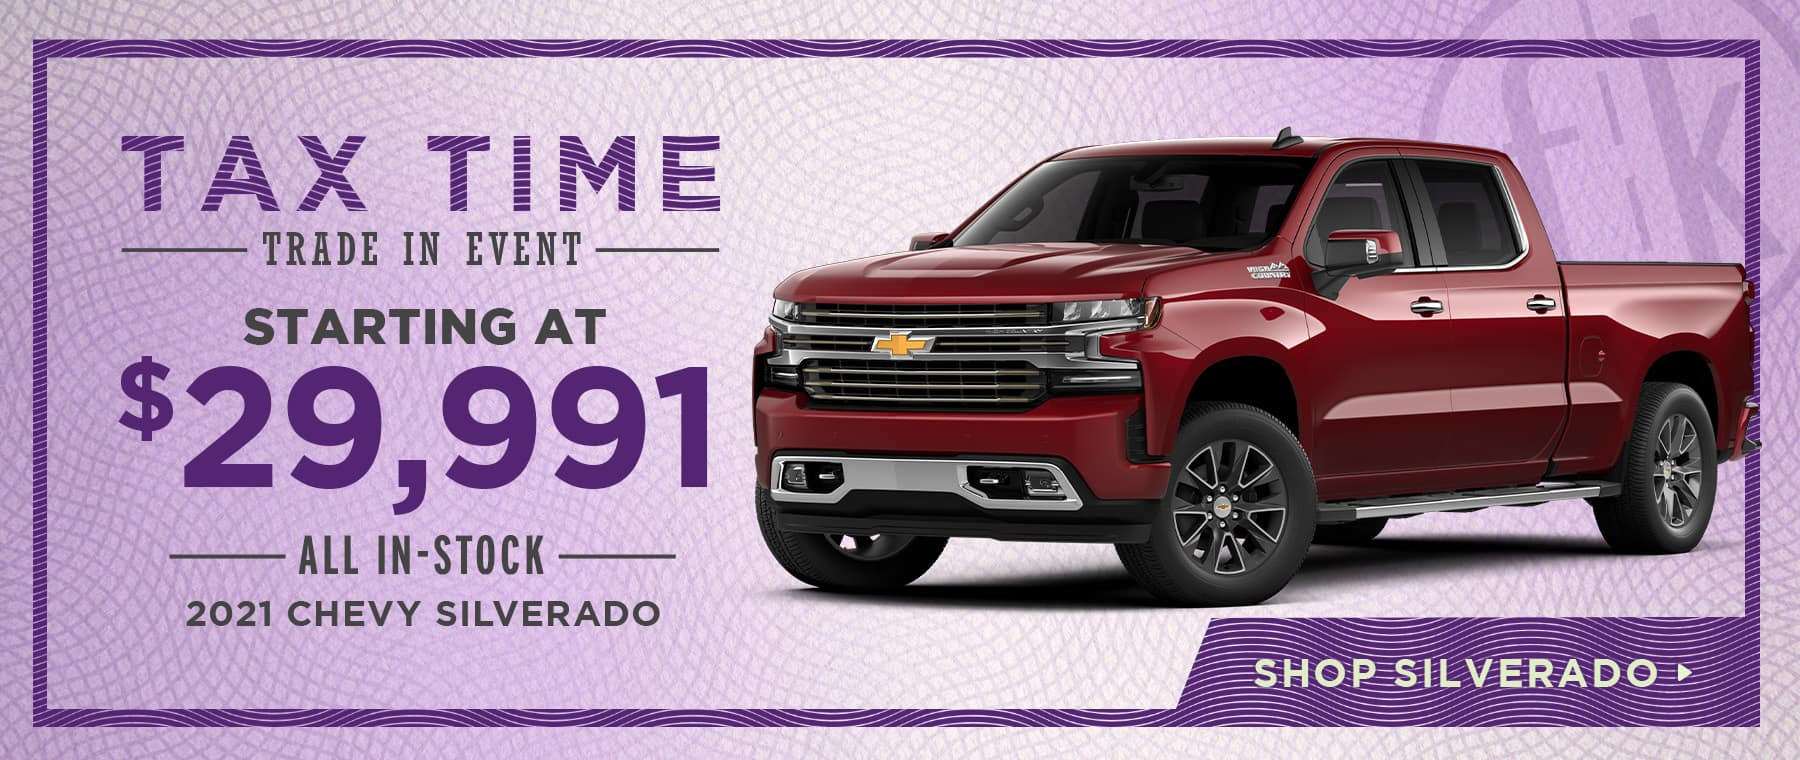 Starting at $29,991 All In-Stock 2021 Chevy Silverado